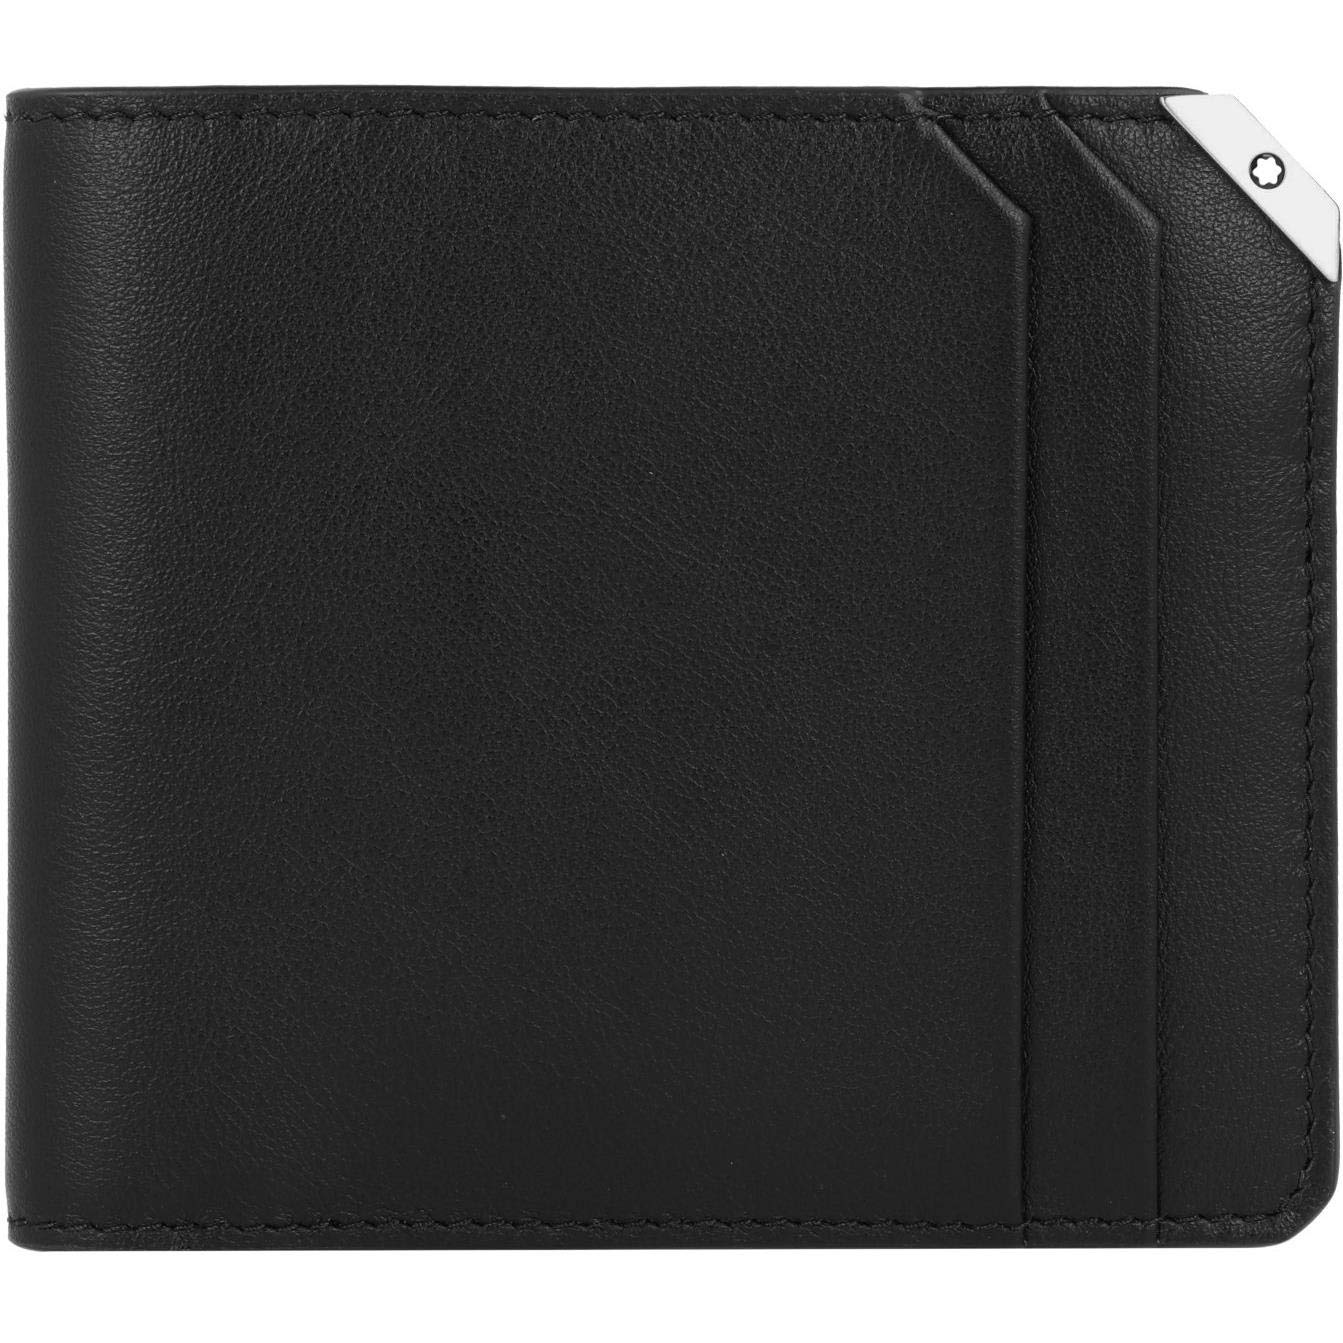 Montblanc Meisterstueck Urban Black Leather Wallet 124091 (4337293361265)